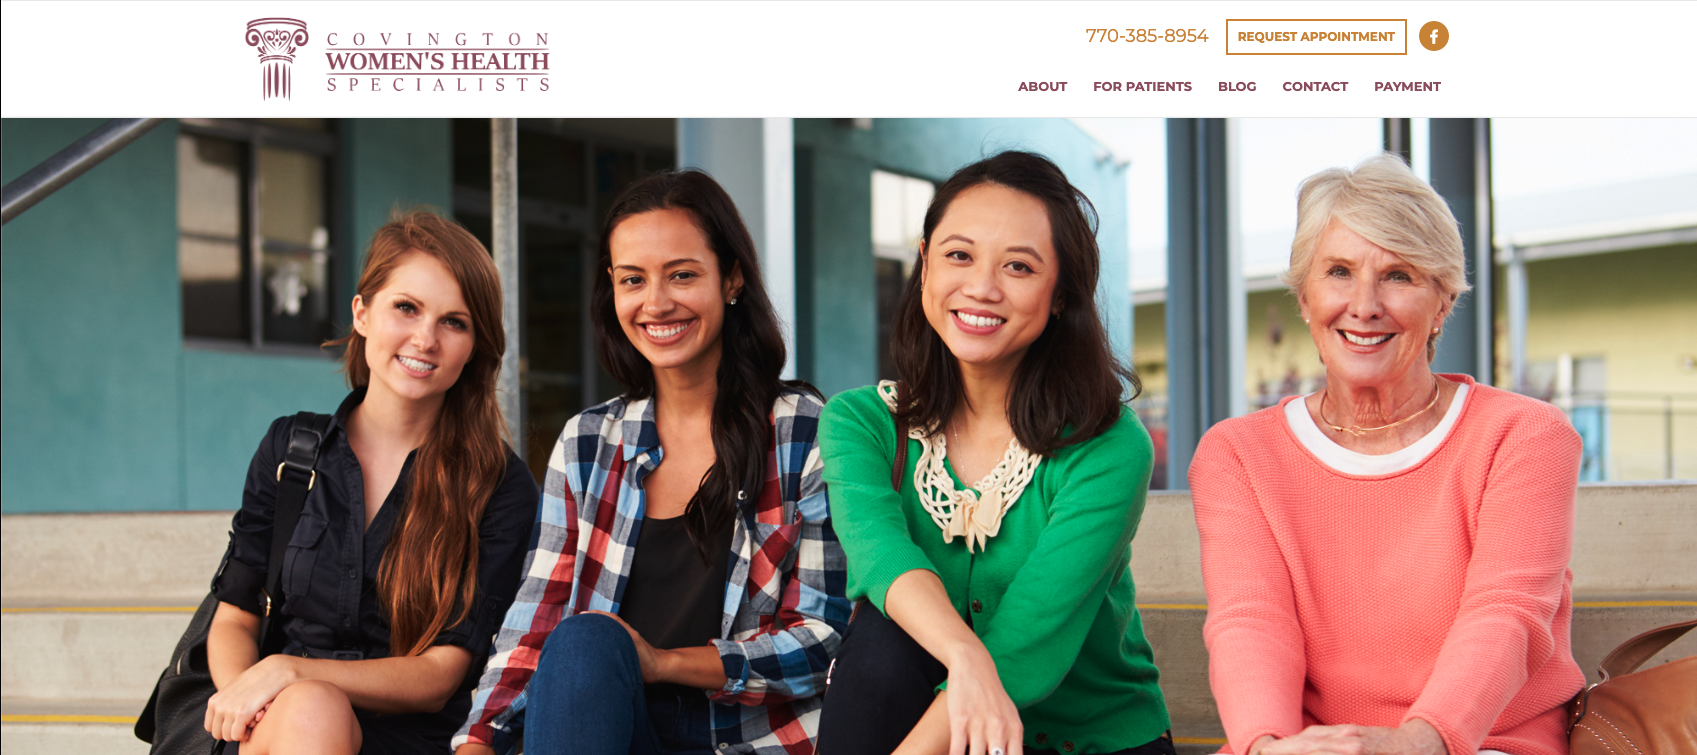 Covington Women's Health website screenshot.